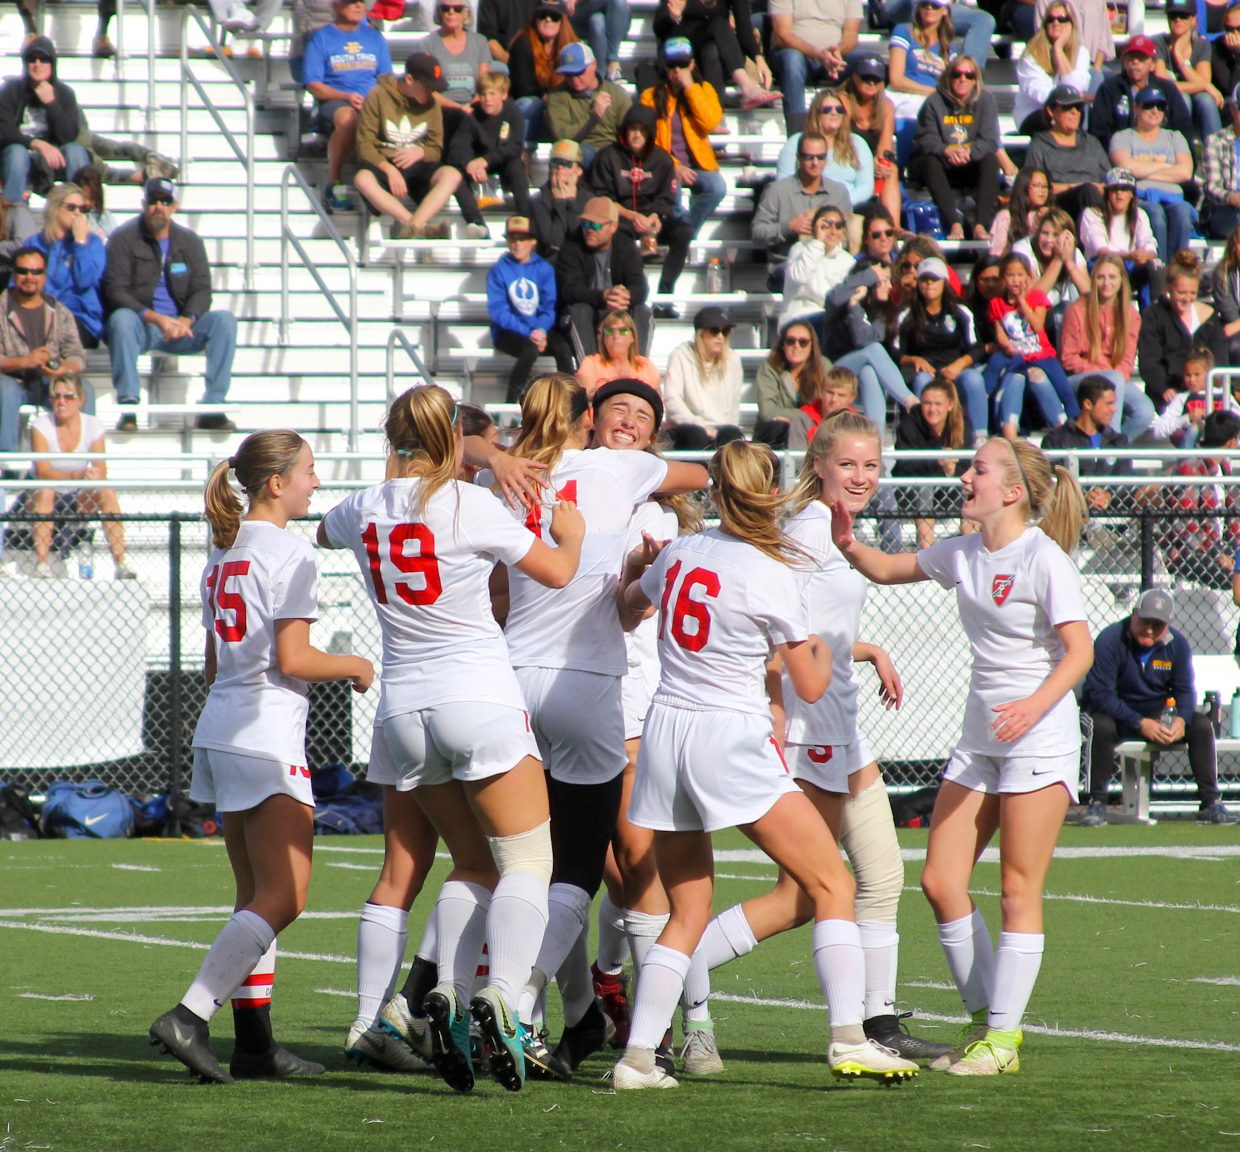 Truckee celebrates Saturday in the first half after Emily Monson's powerful free kick goal gave the Wolverines a 1-0 lead.